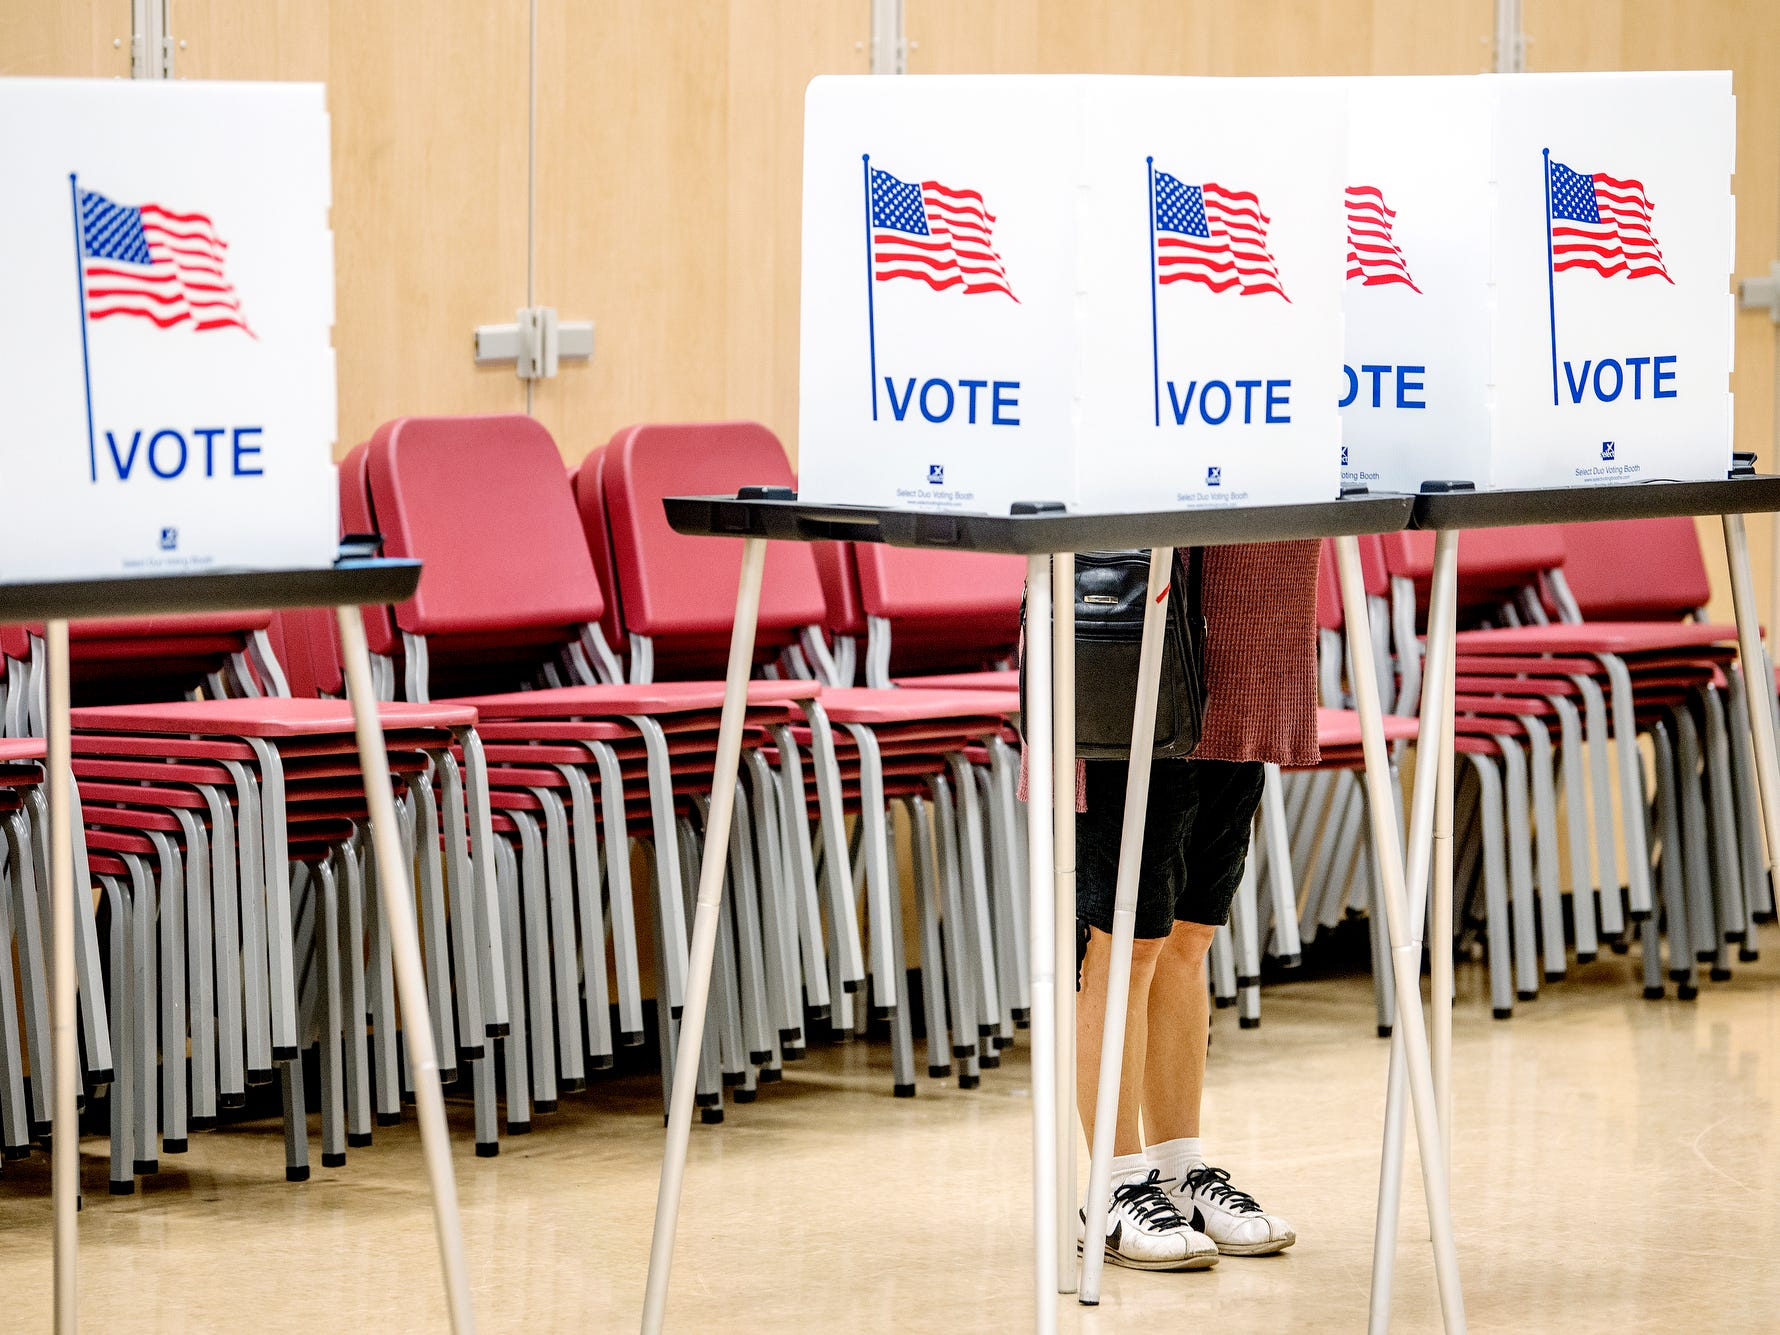 A voters fill out a ballot at a polling place in the band room at Pattengill School on Tuesday, Aug. 7, 2018, in Lansing.